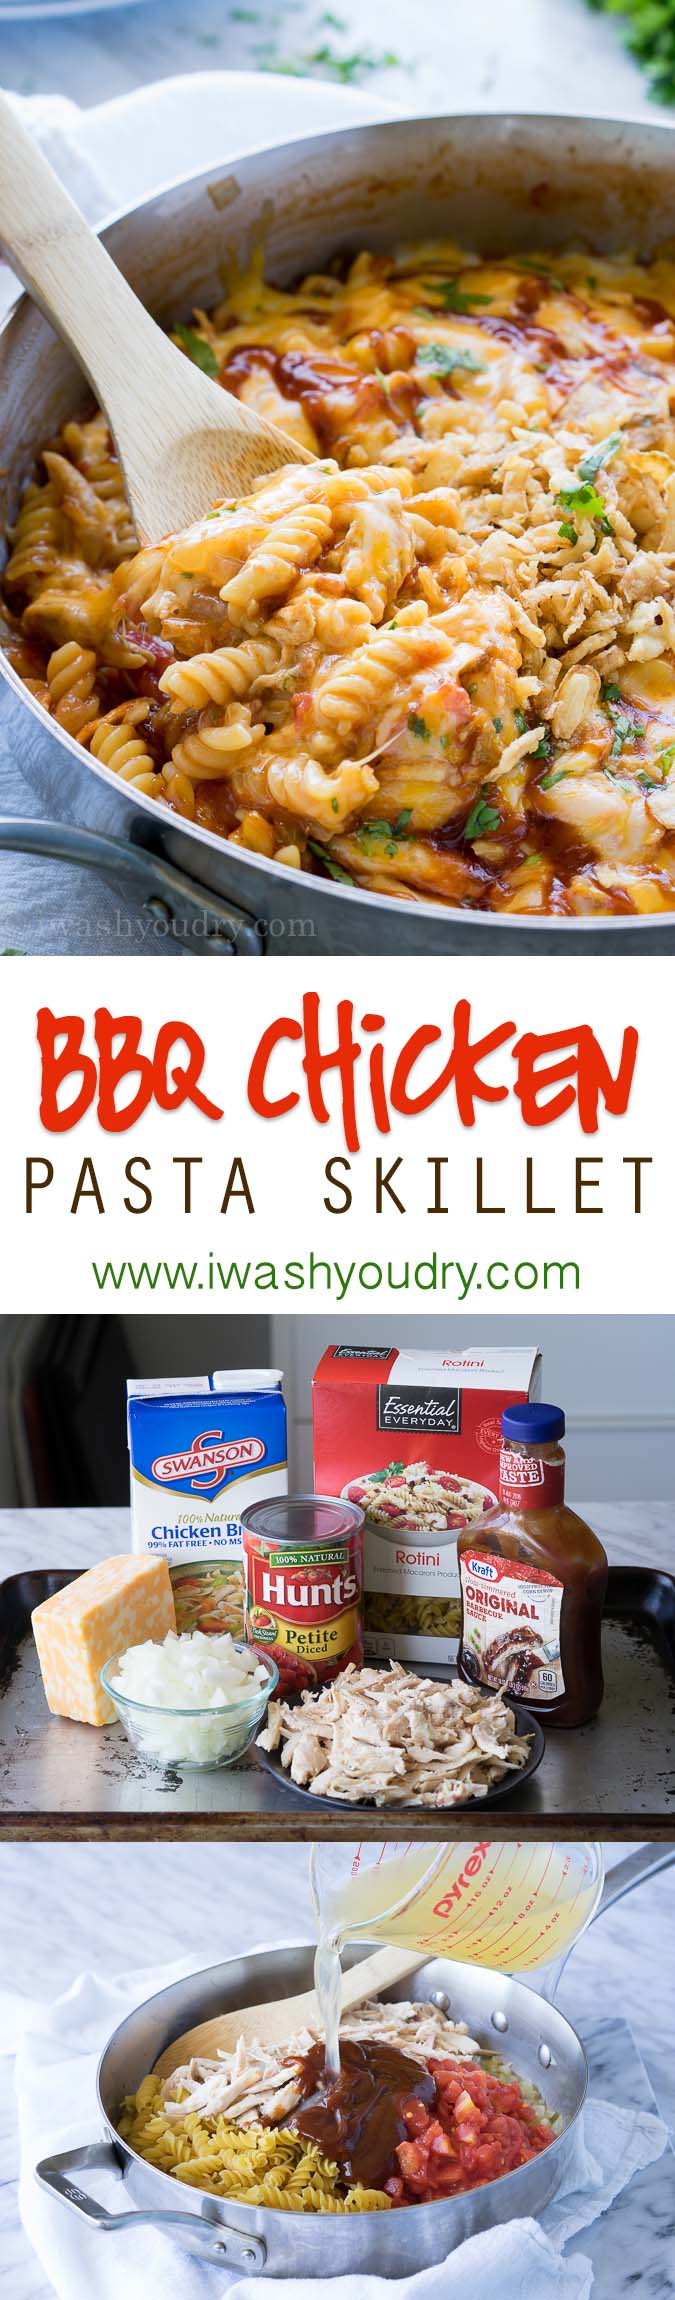 This cheesy BBQ Chicken Pasta skillet is so easy to make! The pasta is cooked in the pan!